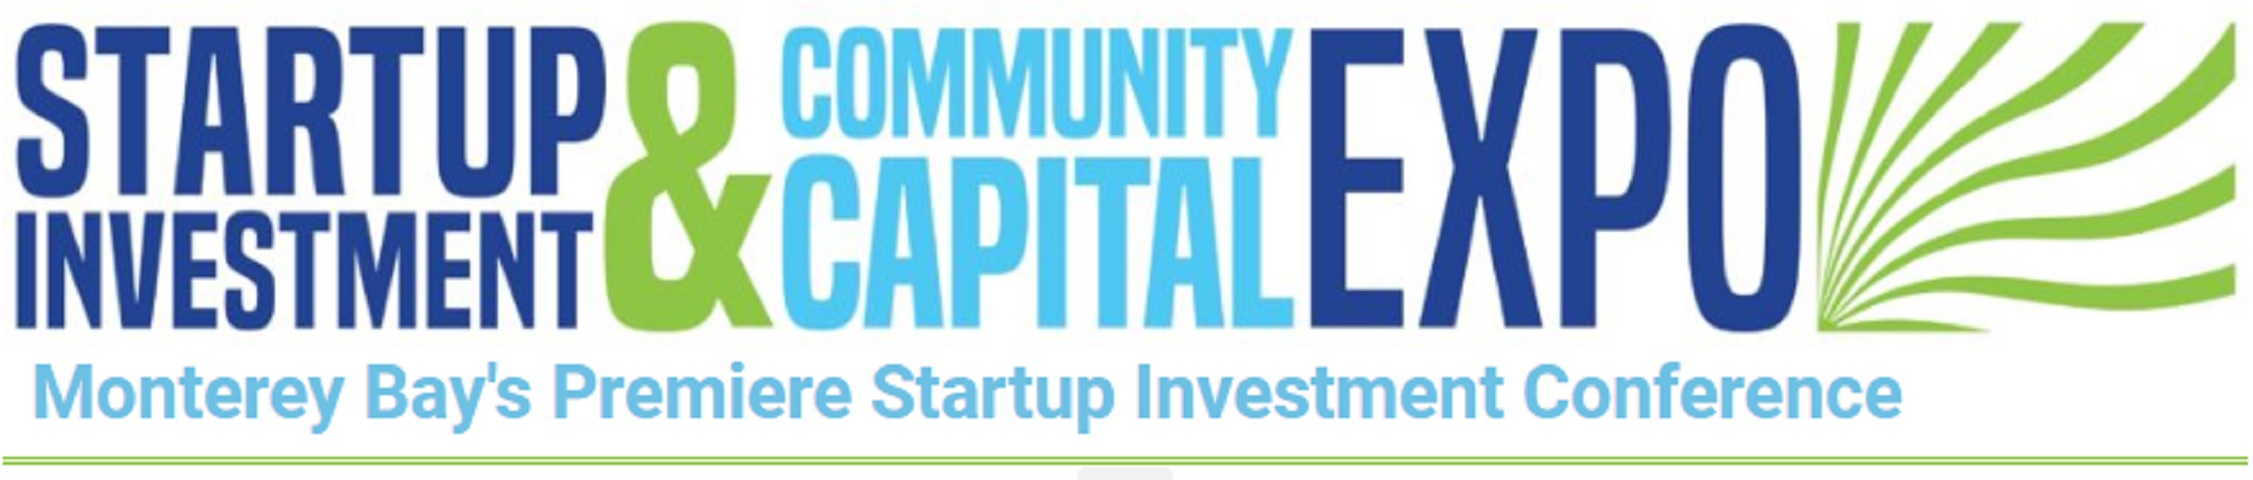 Startup Investment & Community Capital Expo